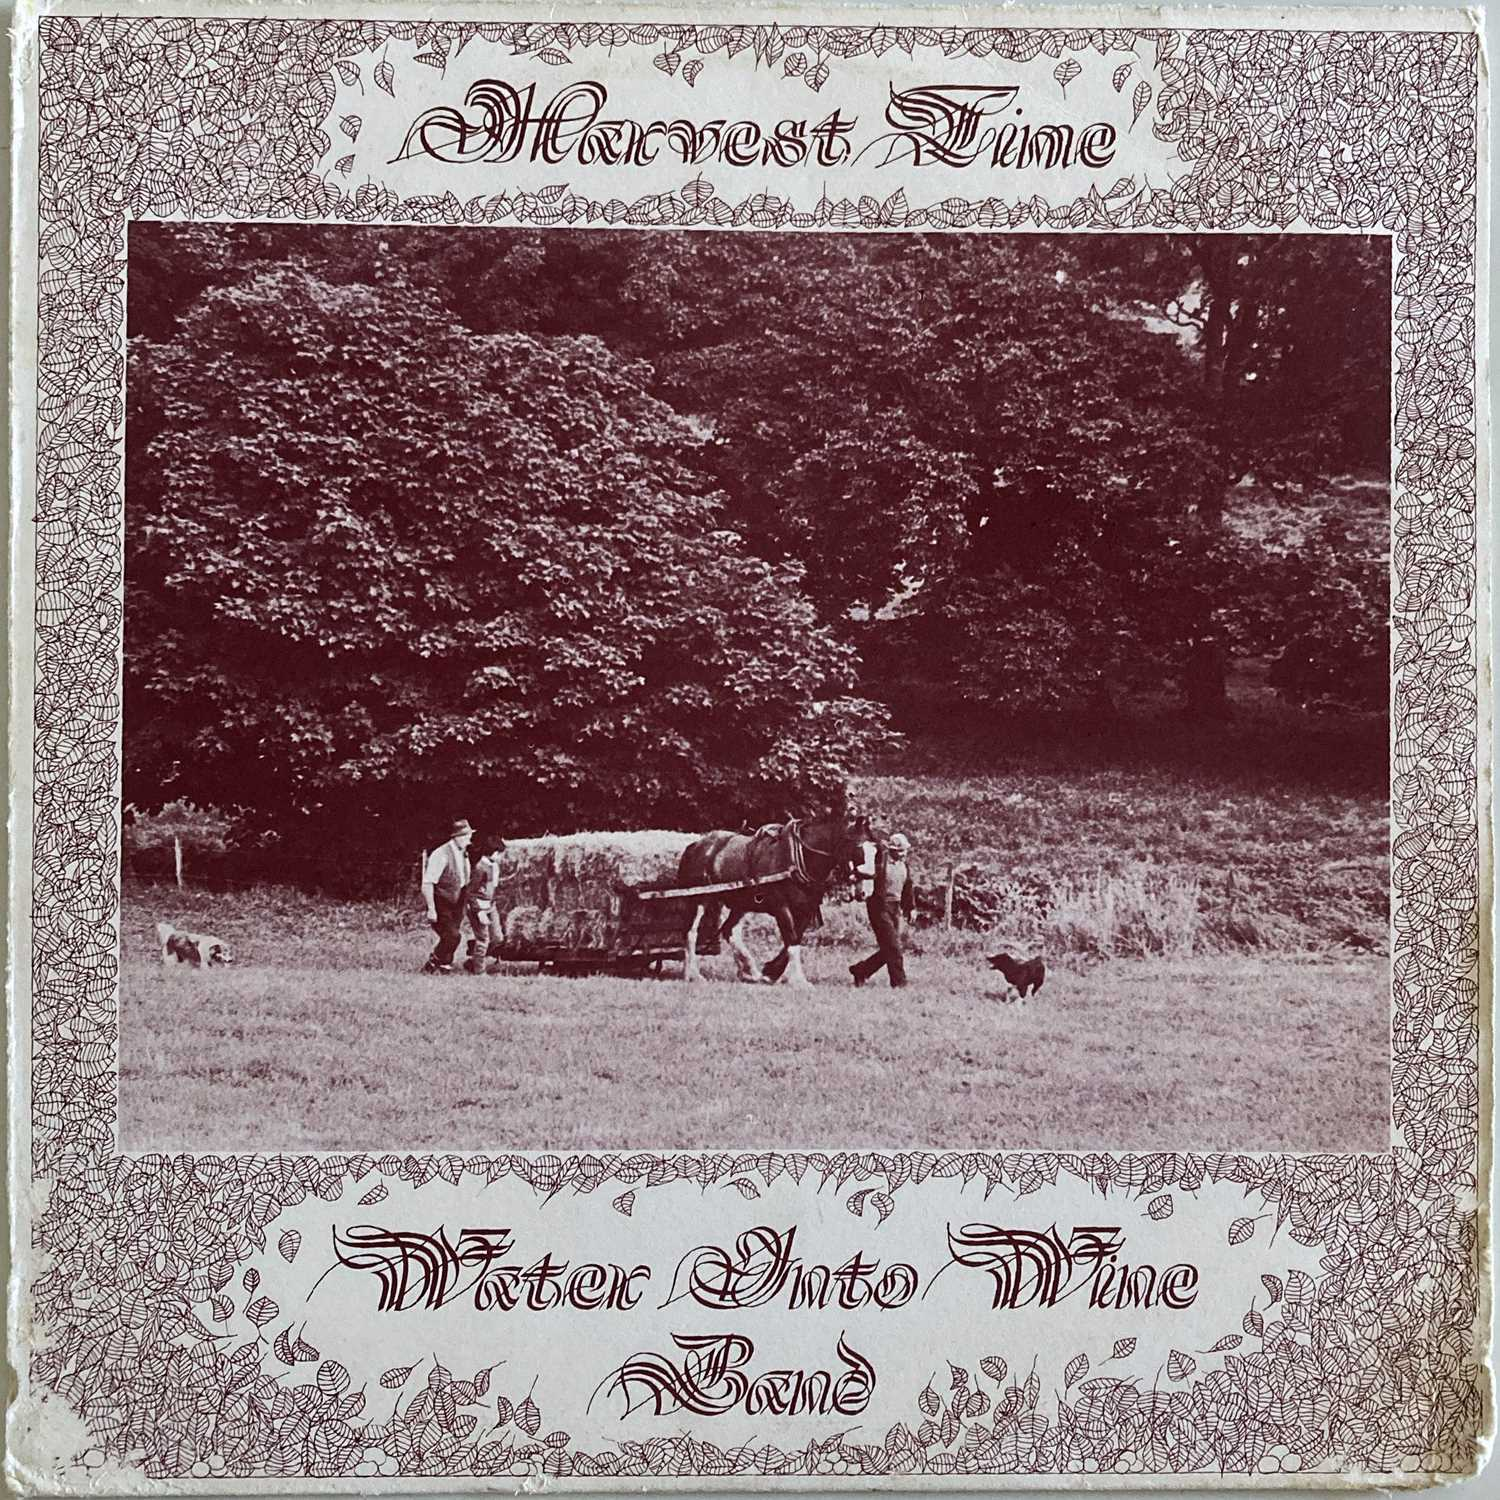 WATER INTO WINE BAND - HARVEST TIME LP (ORIGINAL SELF RELEASED PRESSING - CJT 002)